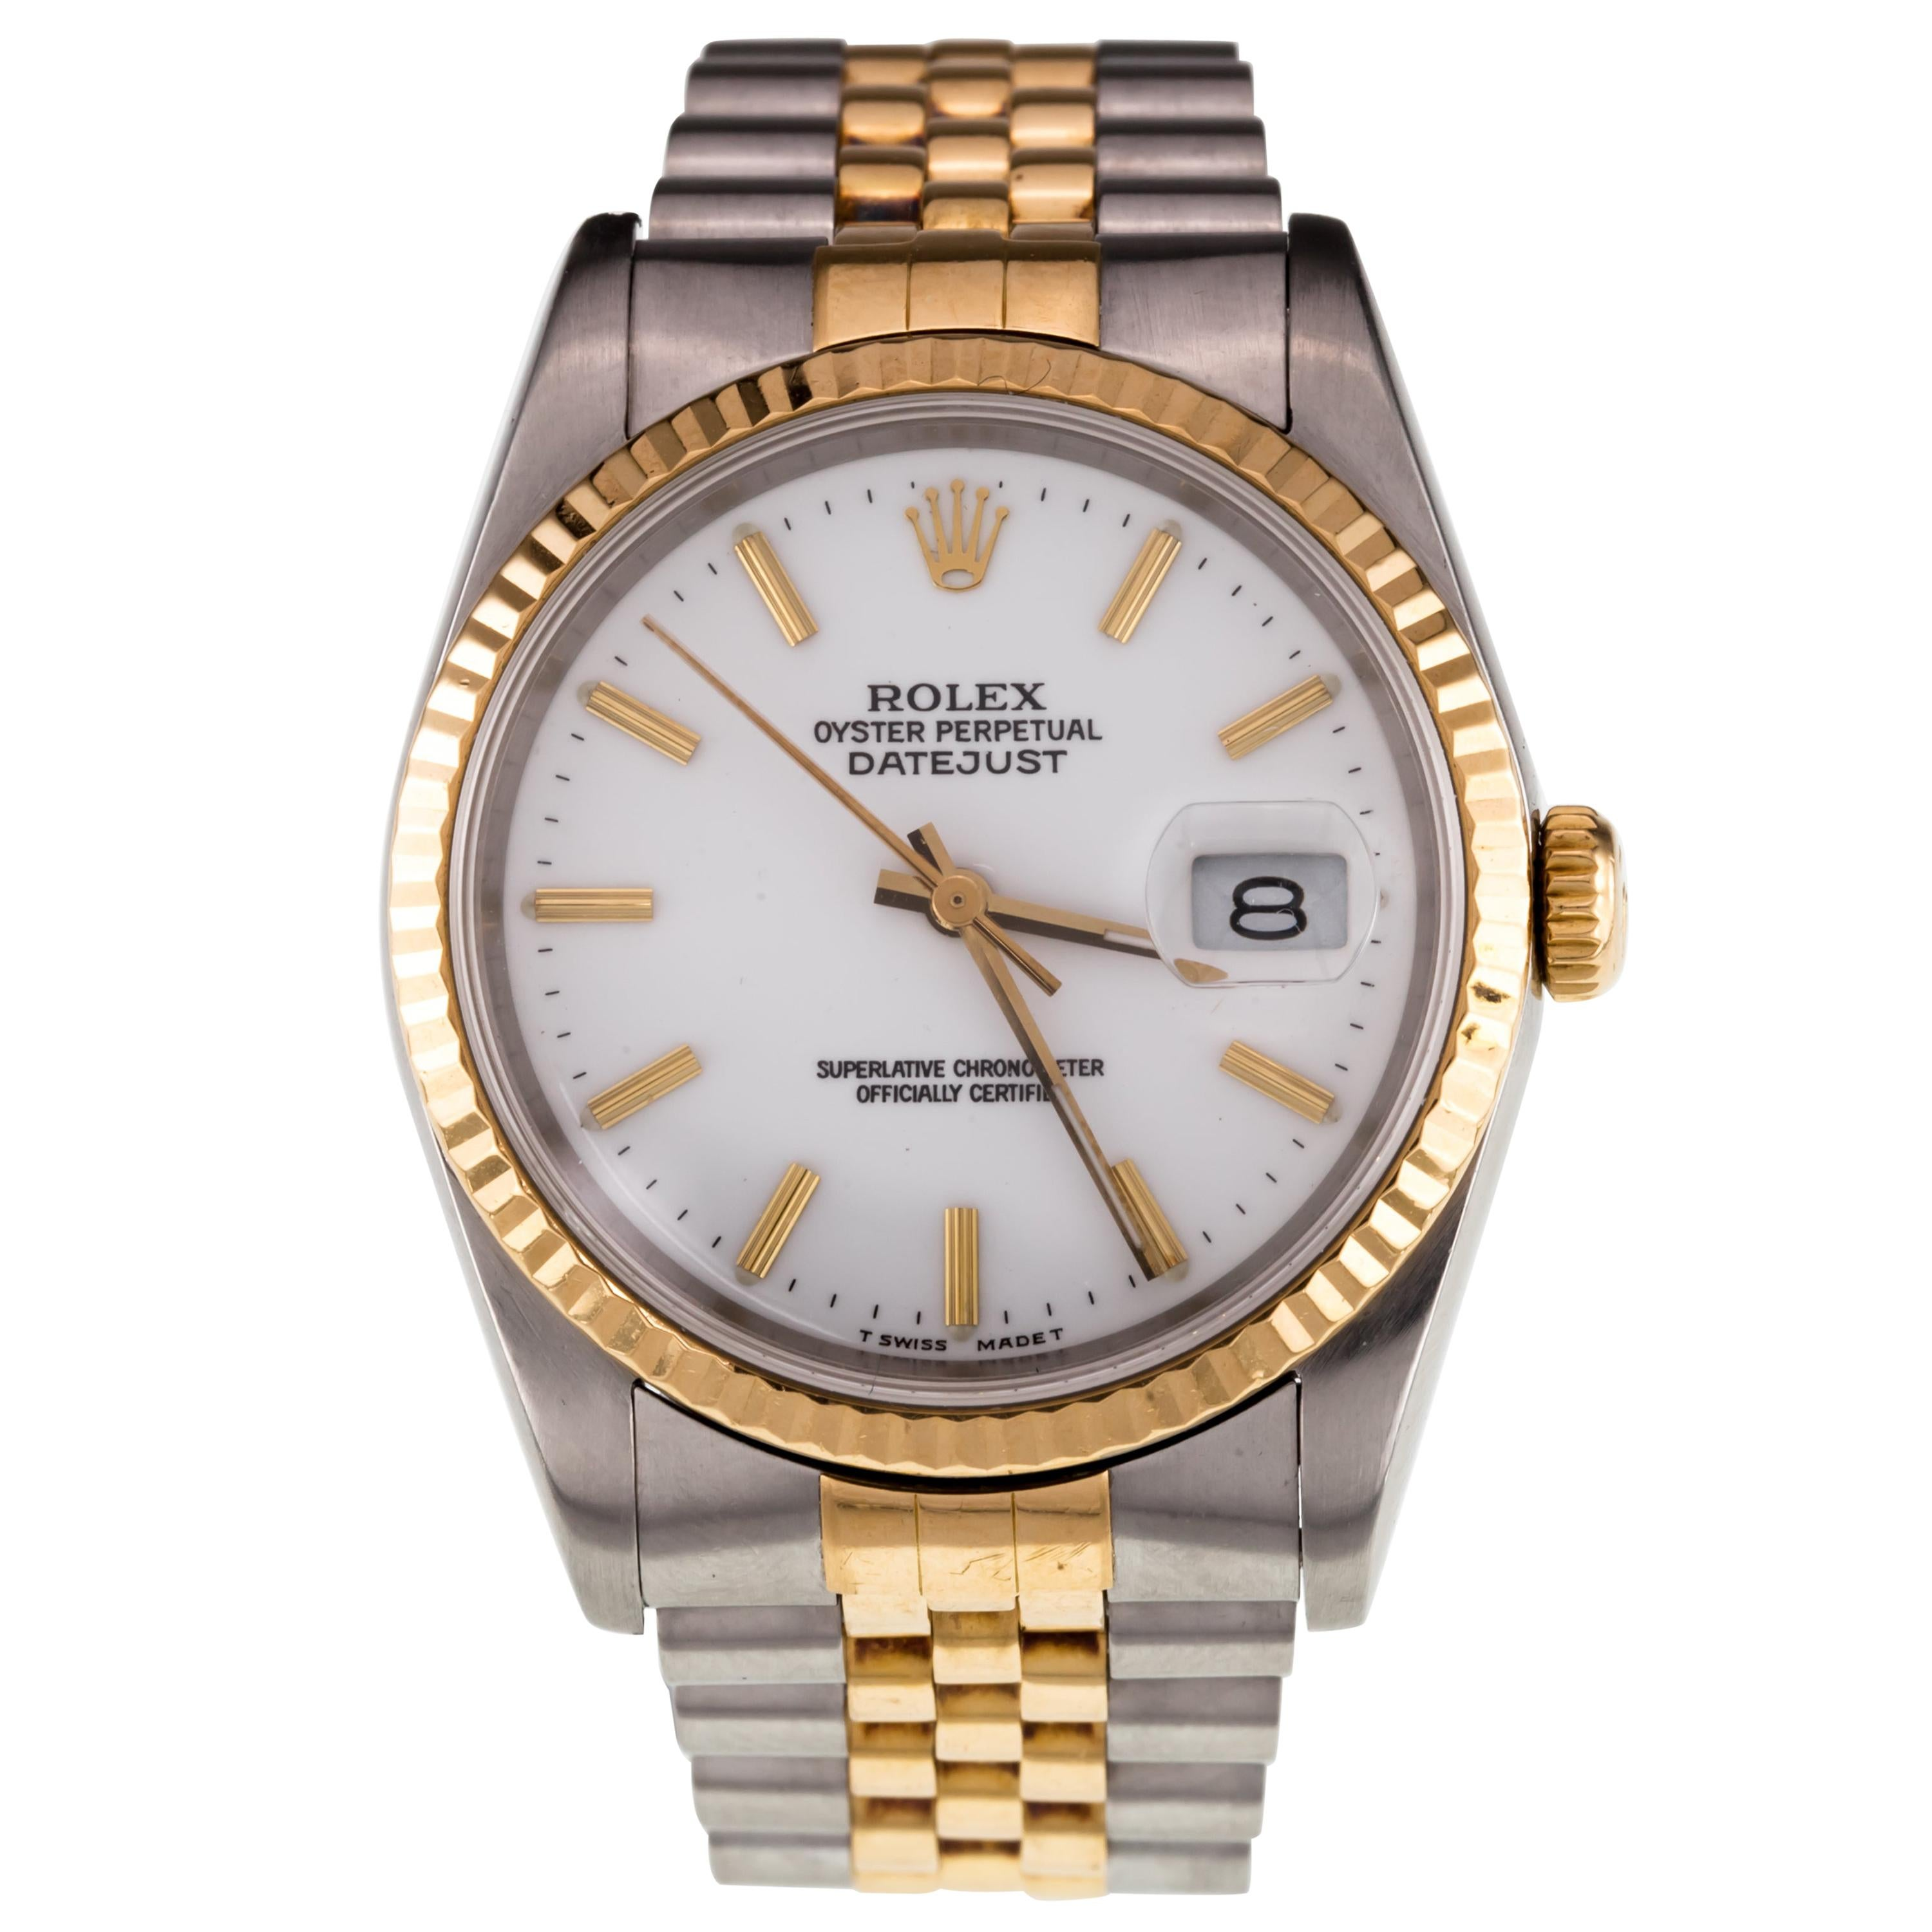 Rolex Men's Two Tone Stainless & Yellow Gold OPDJ Automatic Watch 16233